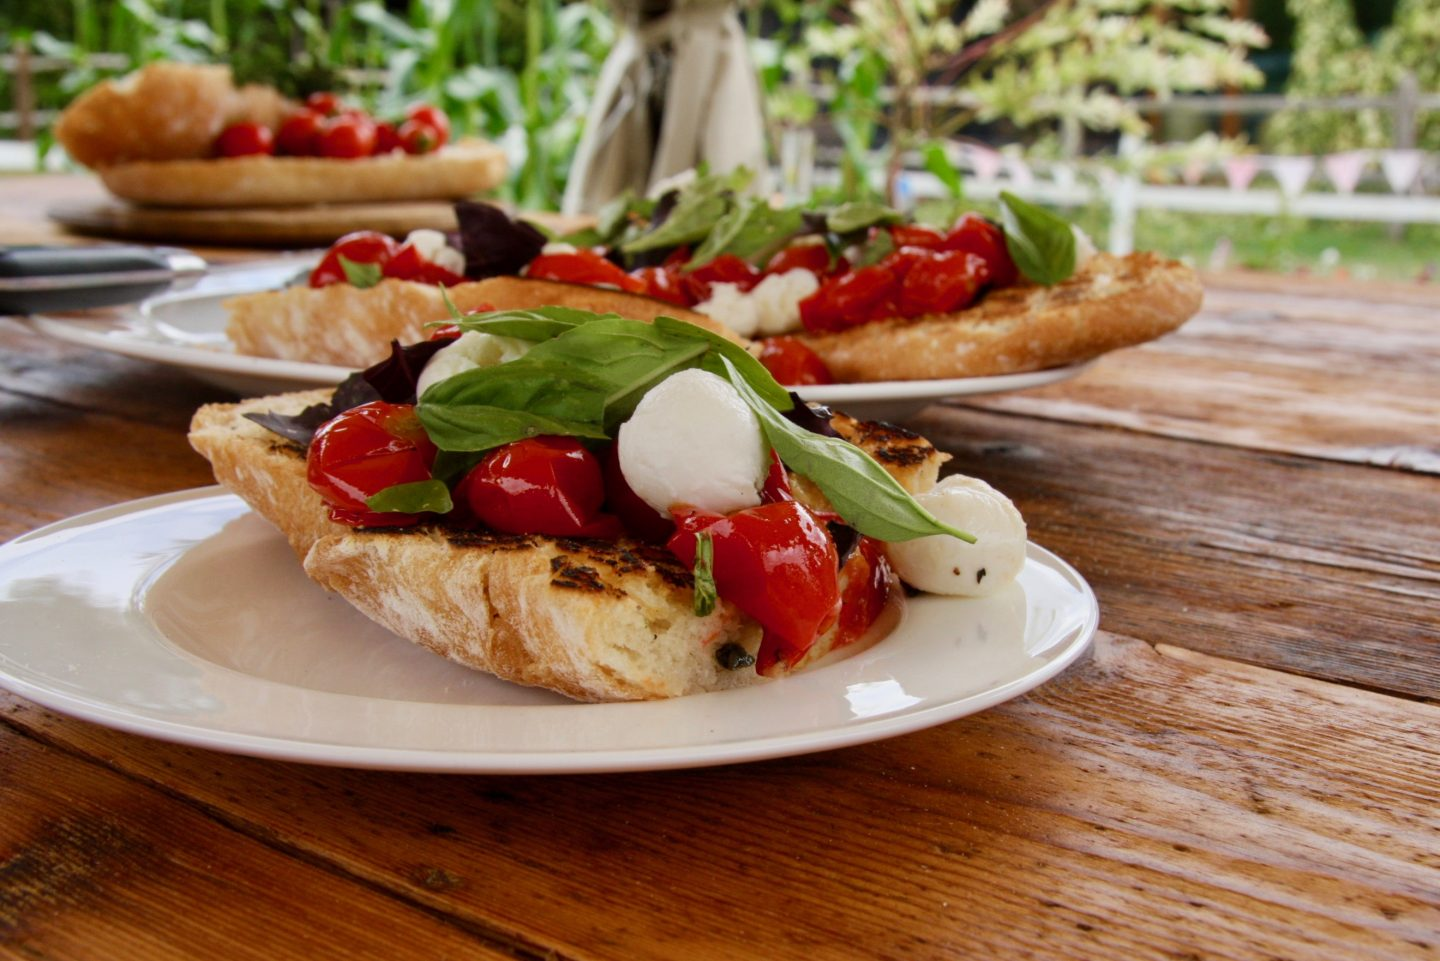 Tomato Bruschetta Recipe - Cherry Menlove